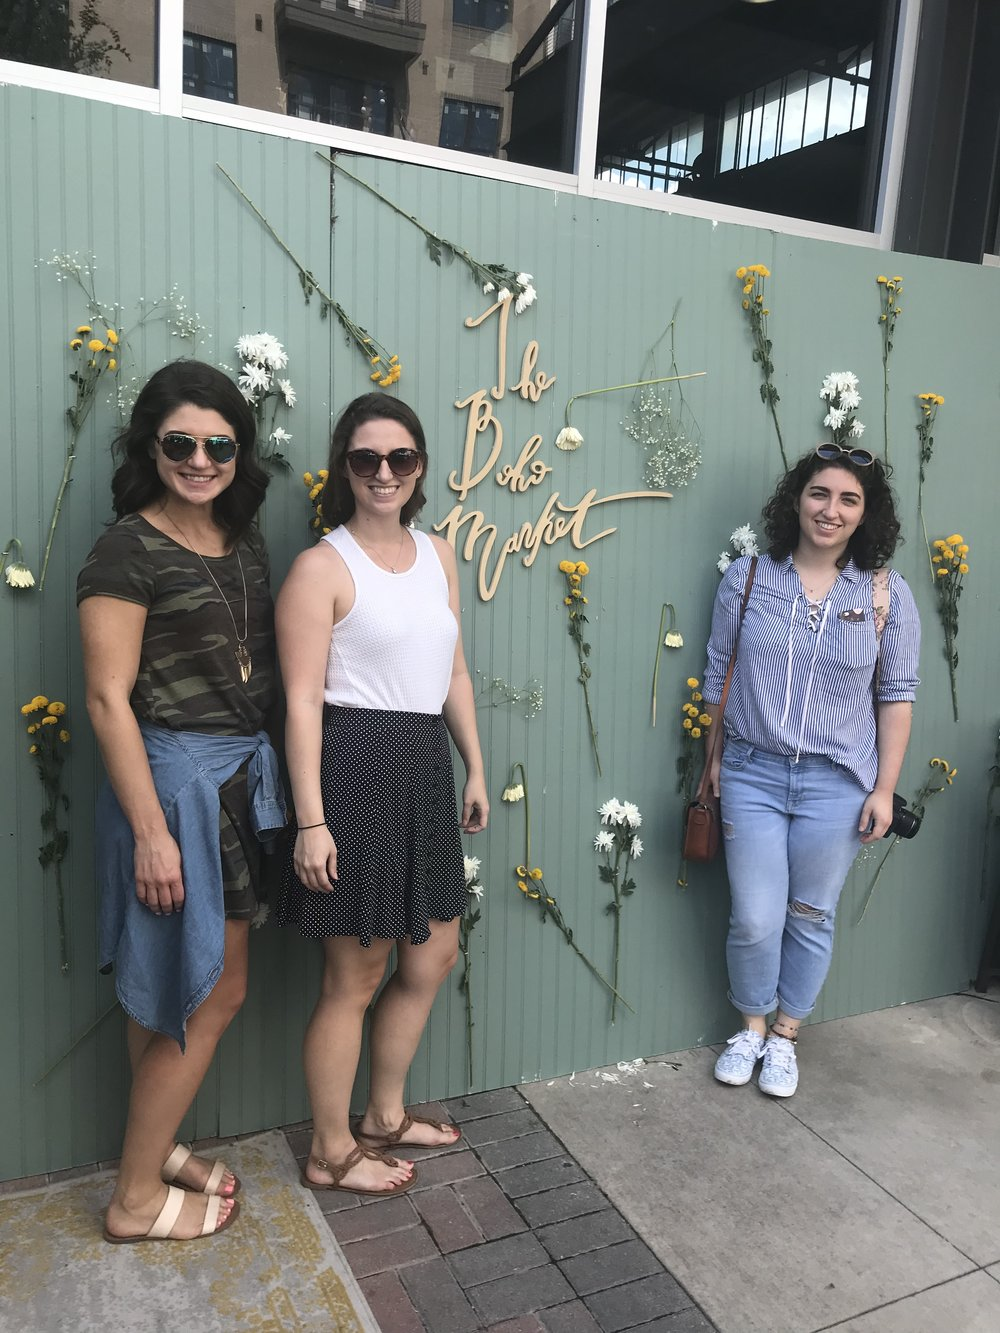 We can't say no to a good photo wall. Even if the flowers were wilted.